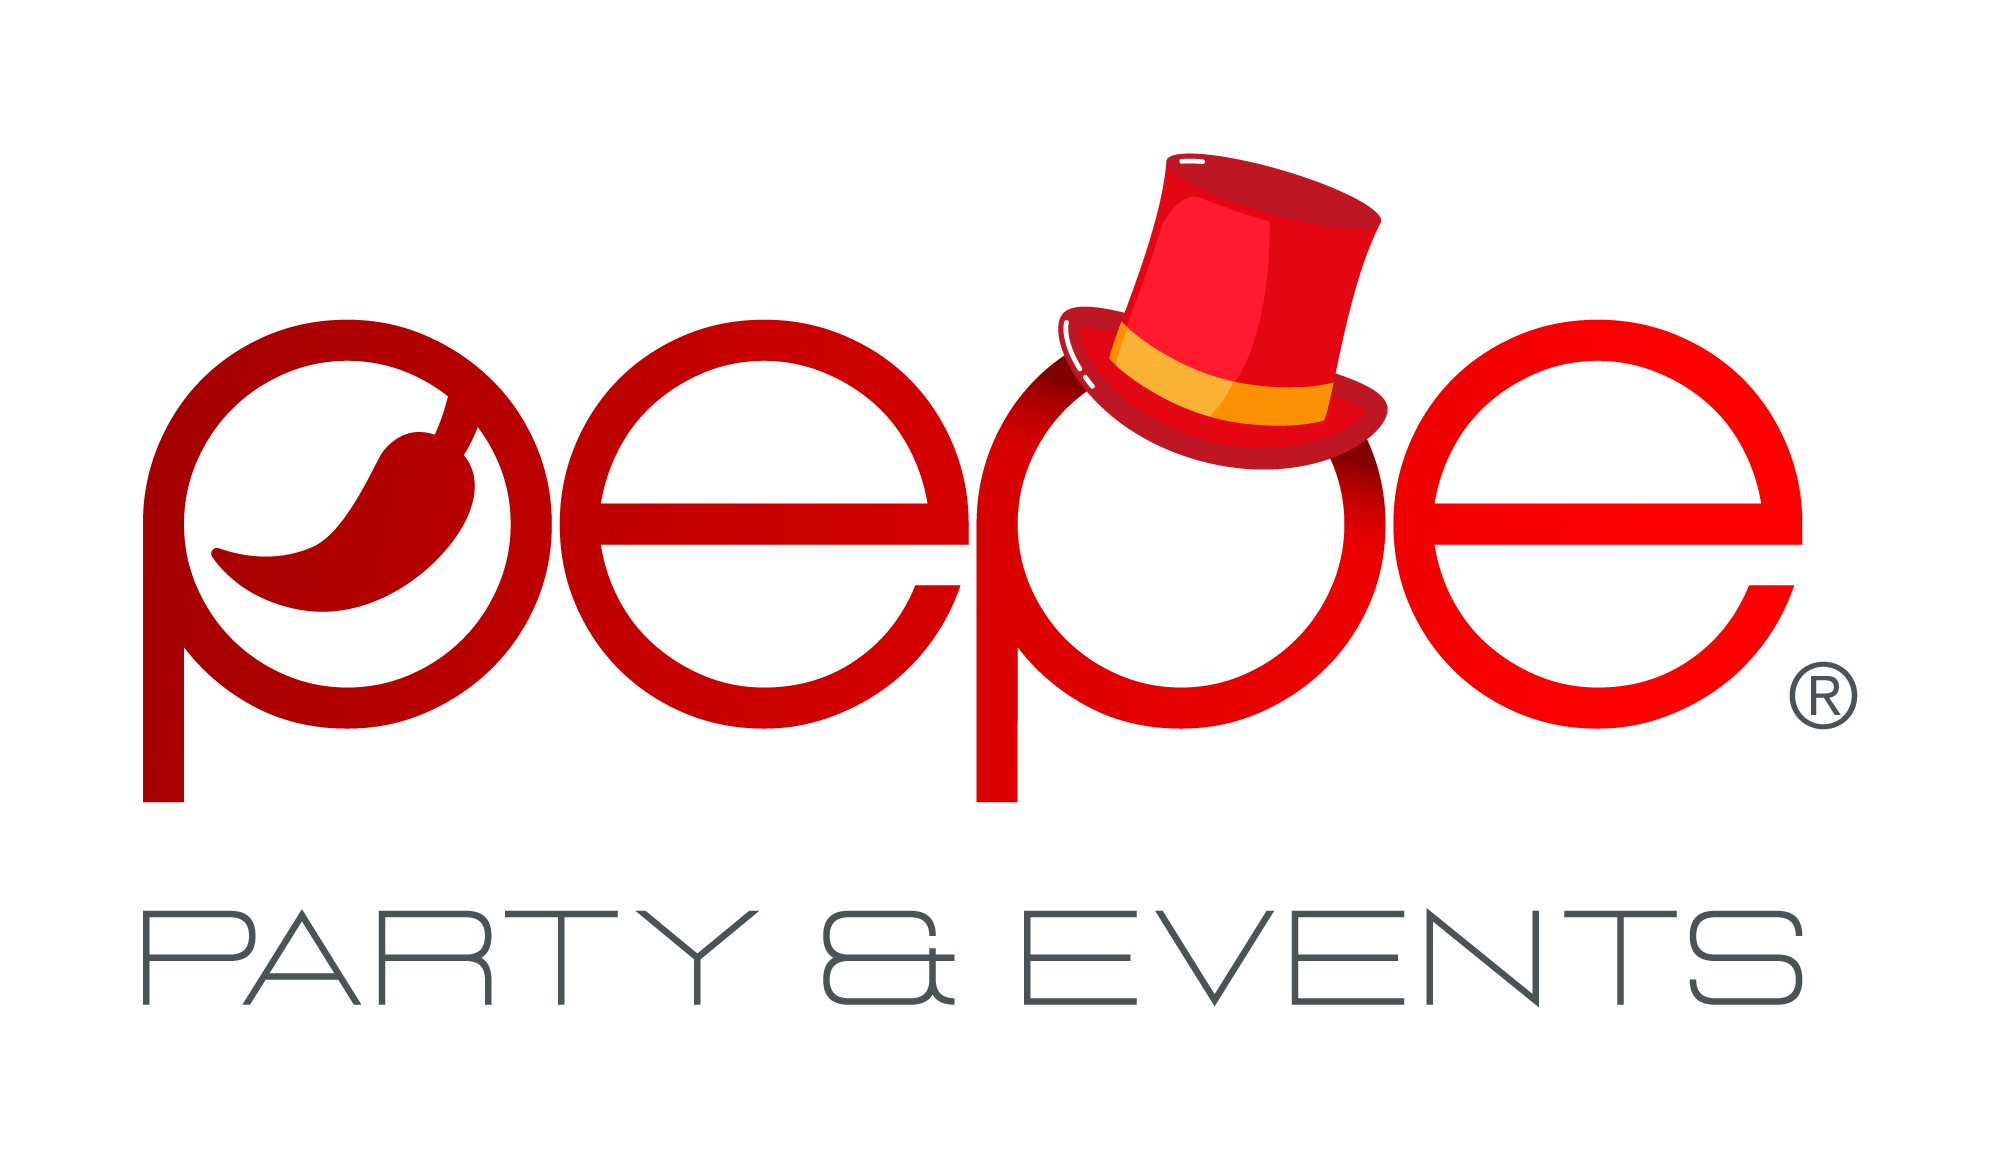 PEPE_PARTY_LOGO_1